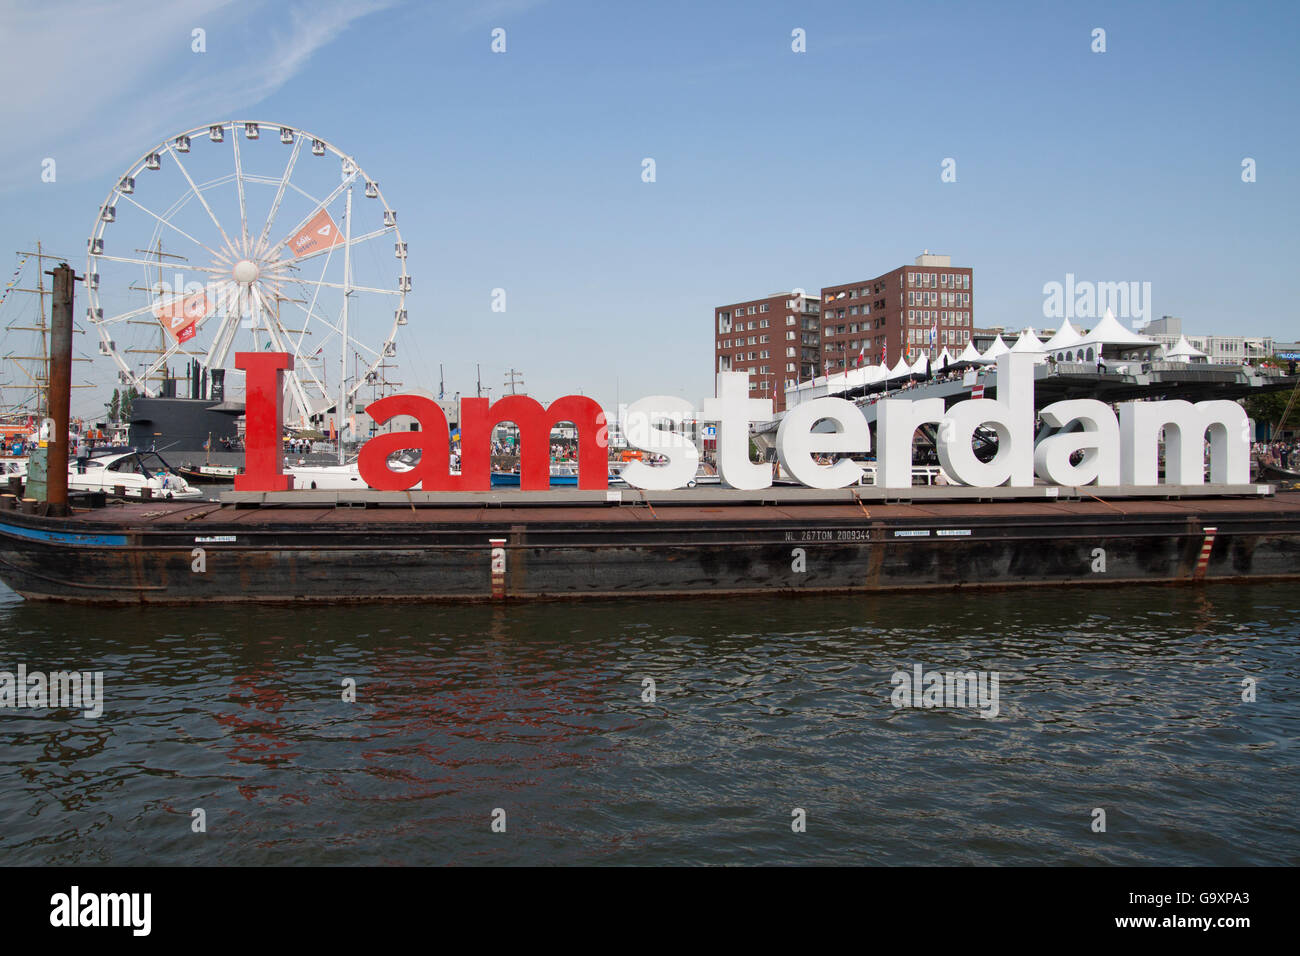 AMSTERDAM, THE NETHERLANDS, 20 AUGUST 2015  Big red and white letters of Amsterdam on a boat during  great nautical - Stock Image